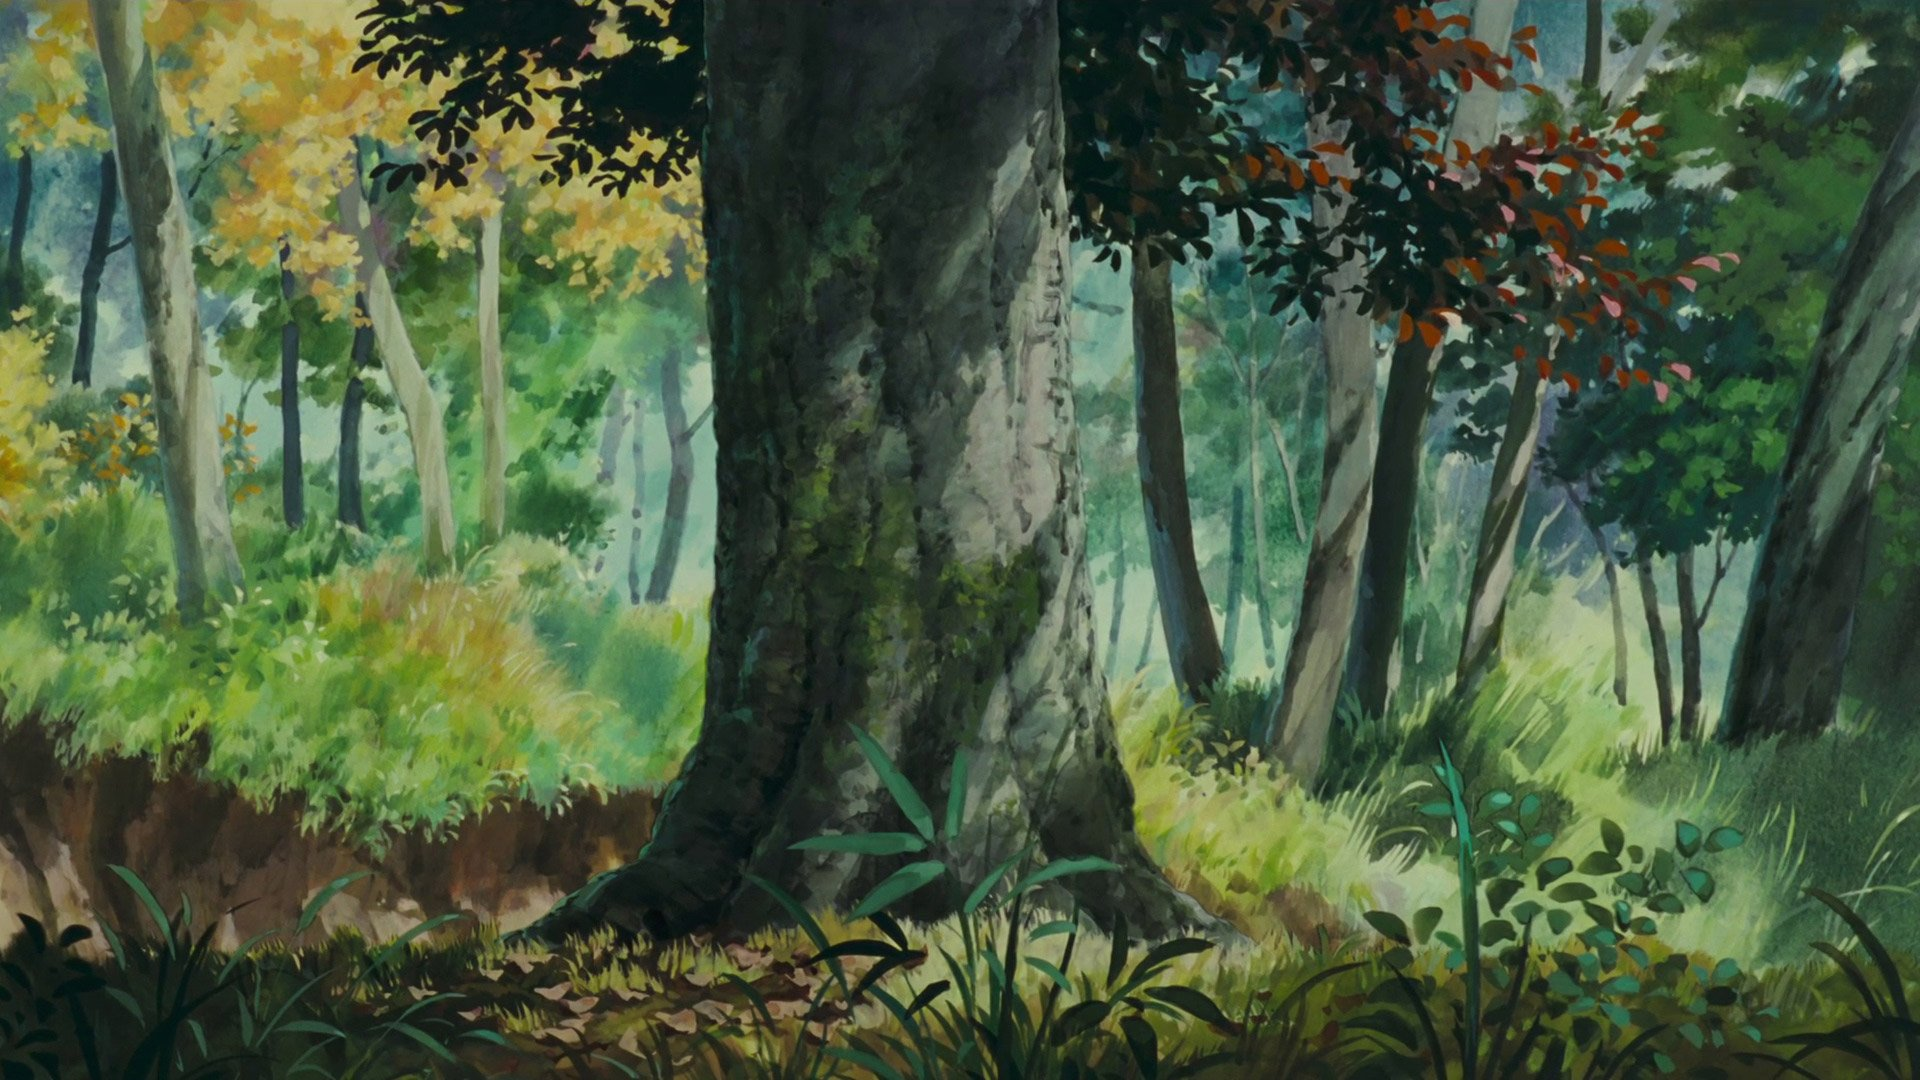 Pom Poko painted nature wallpaper